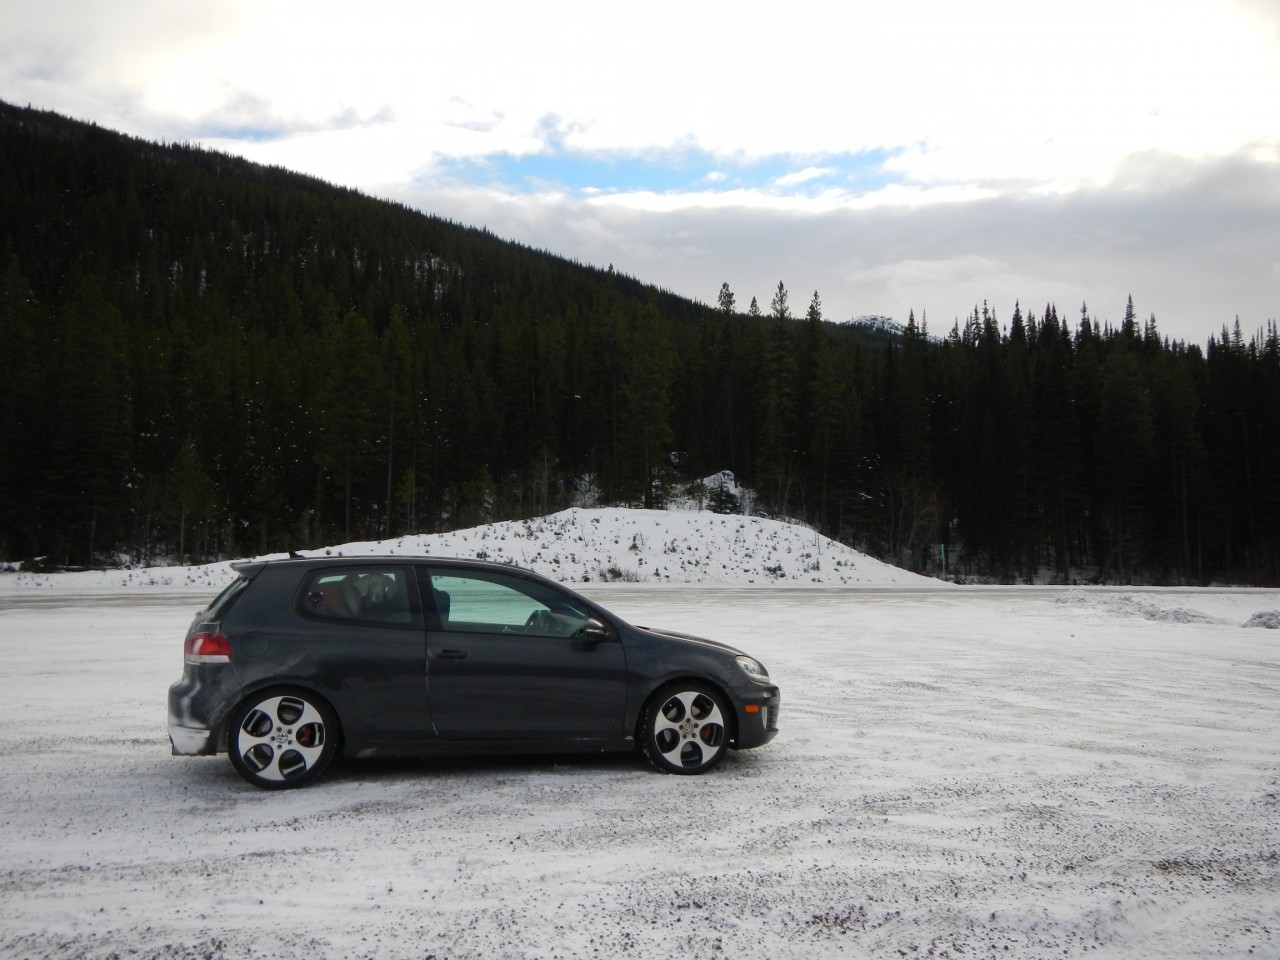 VW GTI parked lakeside in the snow